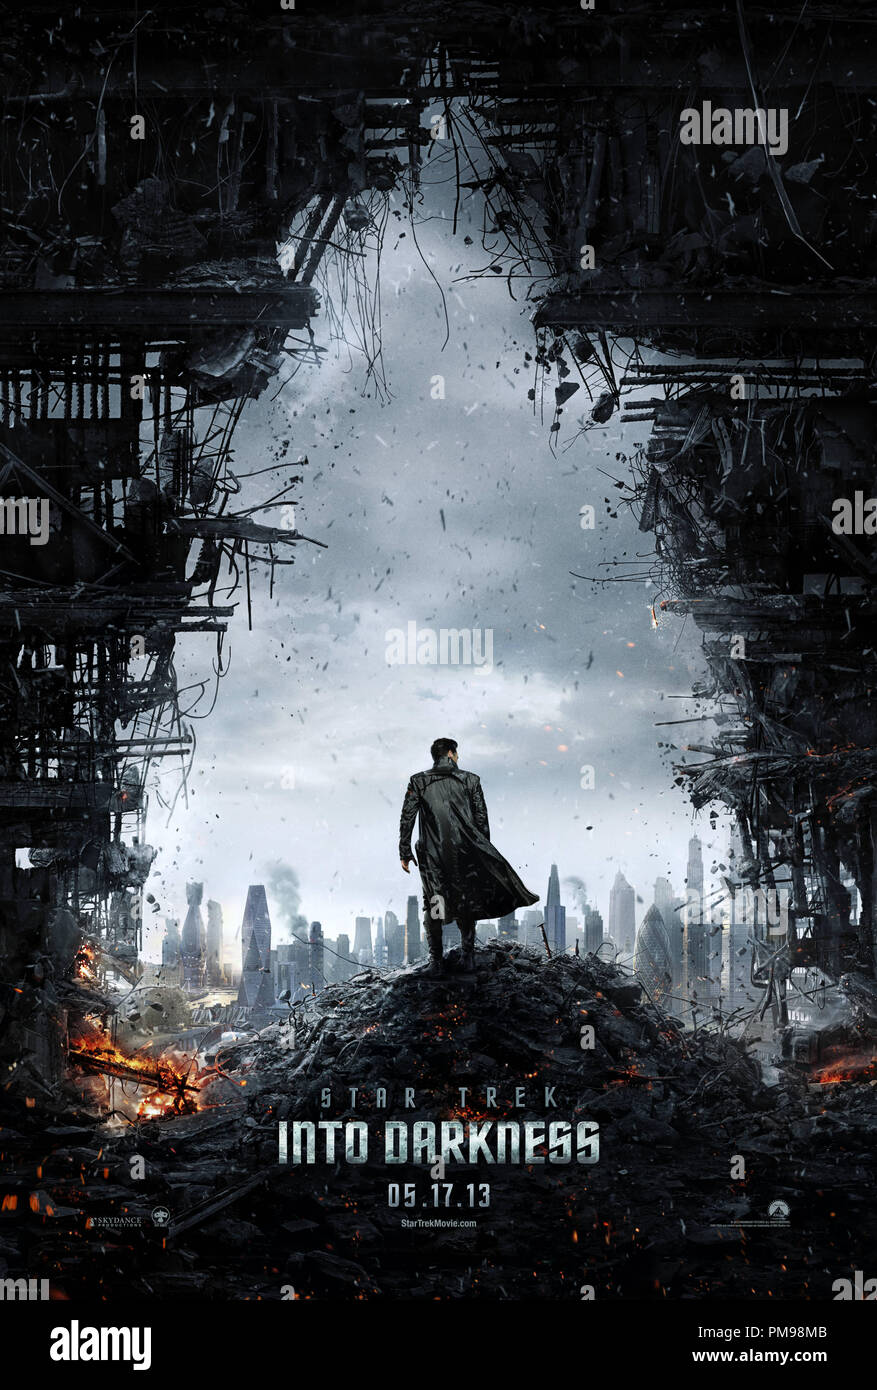 STAR TREK INTO DARKNESS, from Paramount Pictures and Skydance Productions. Poster - Stock Image